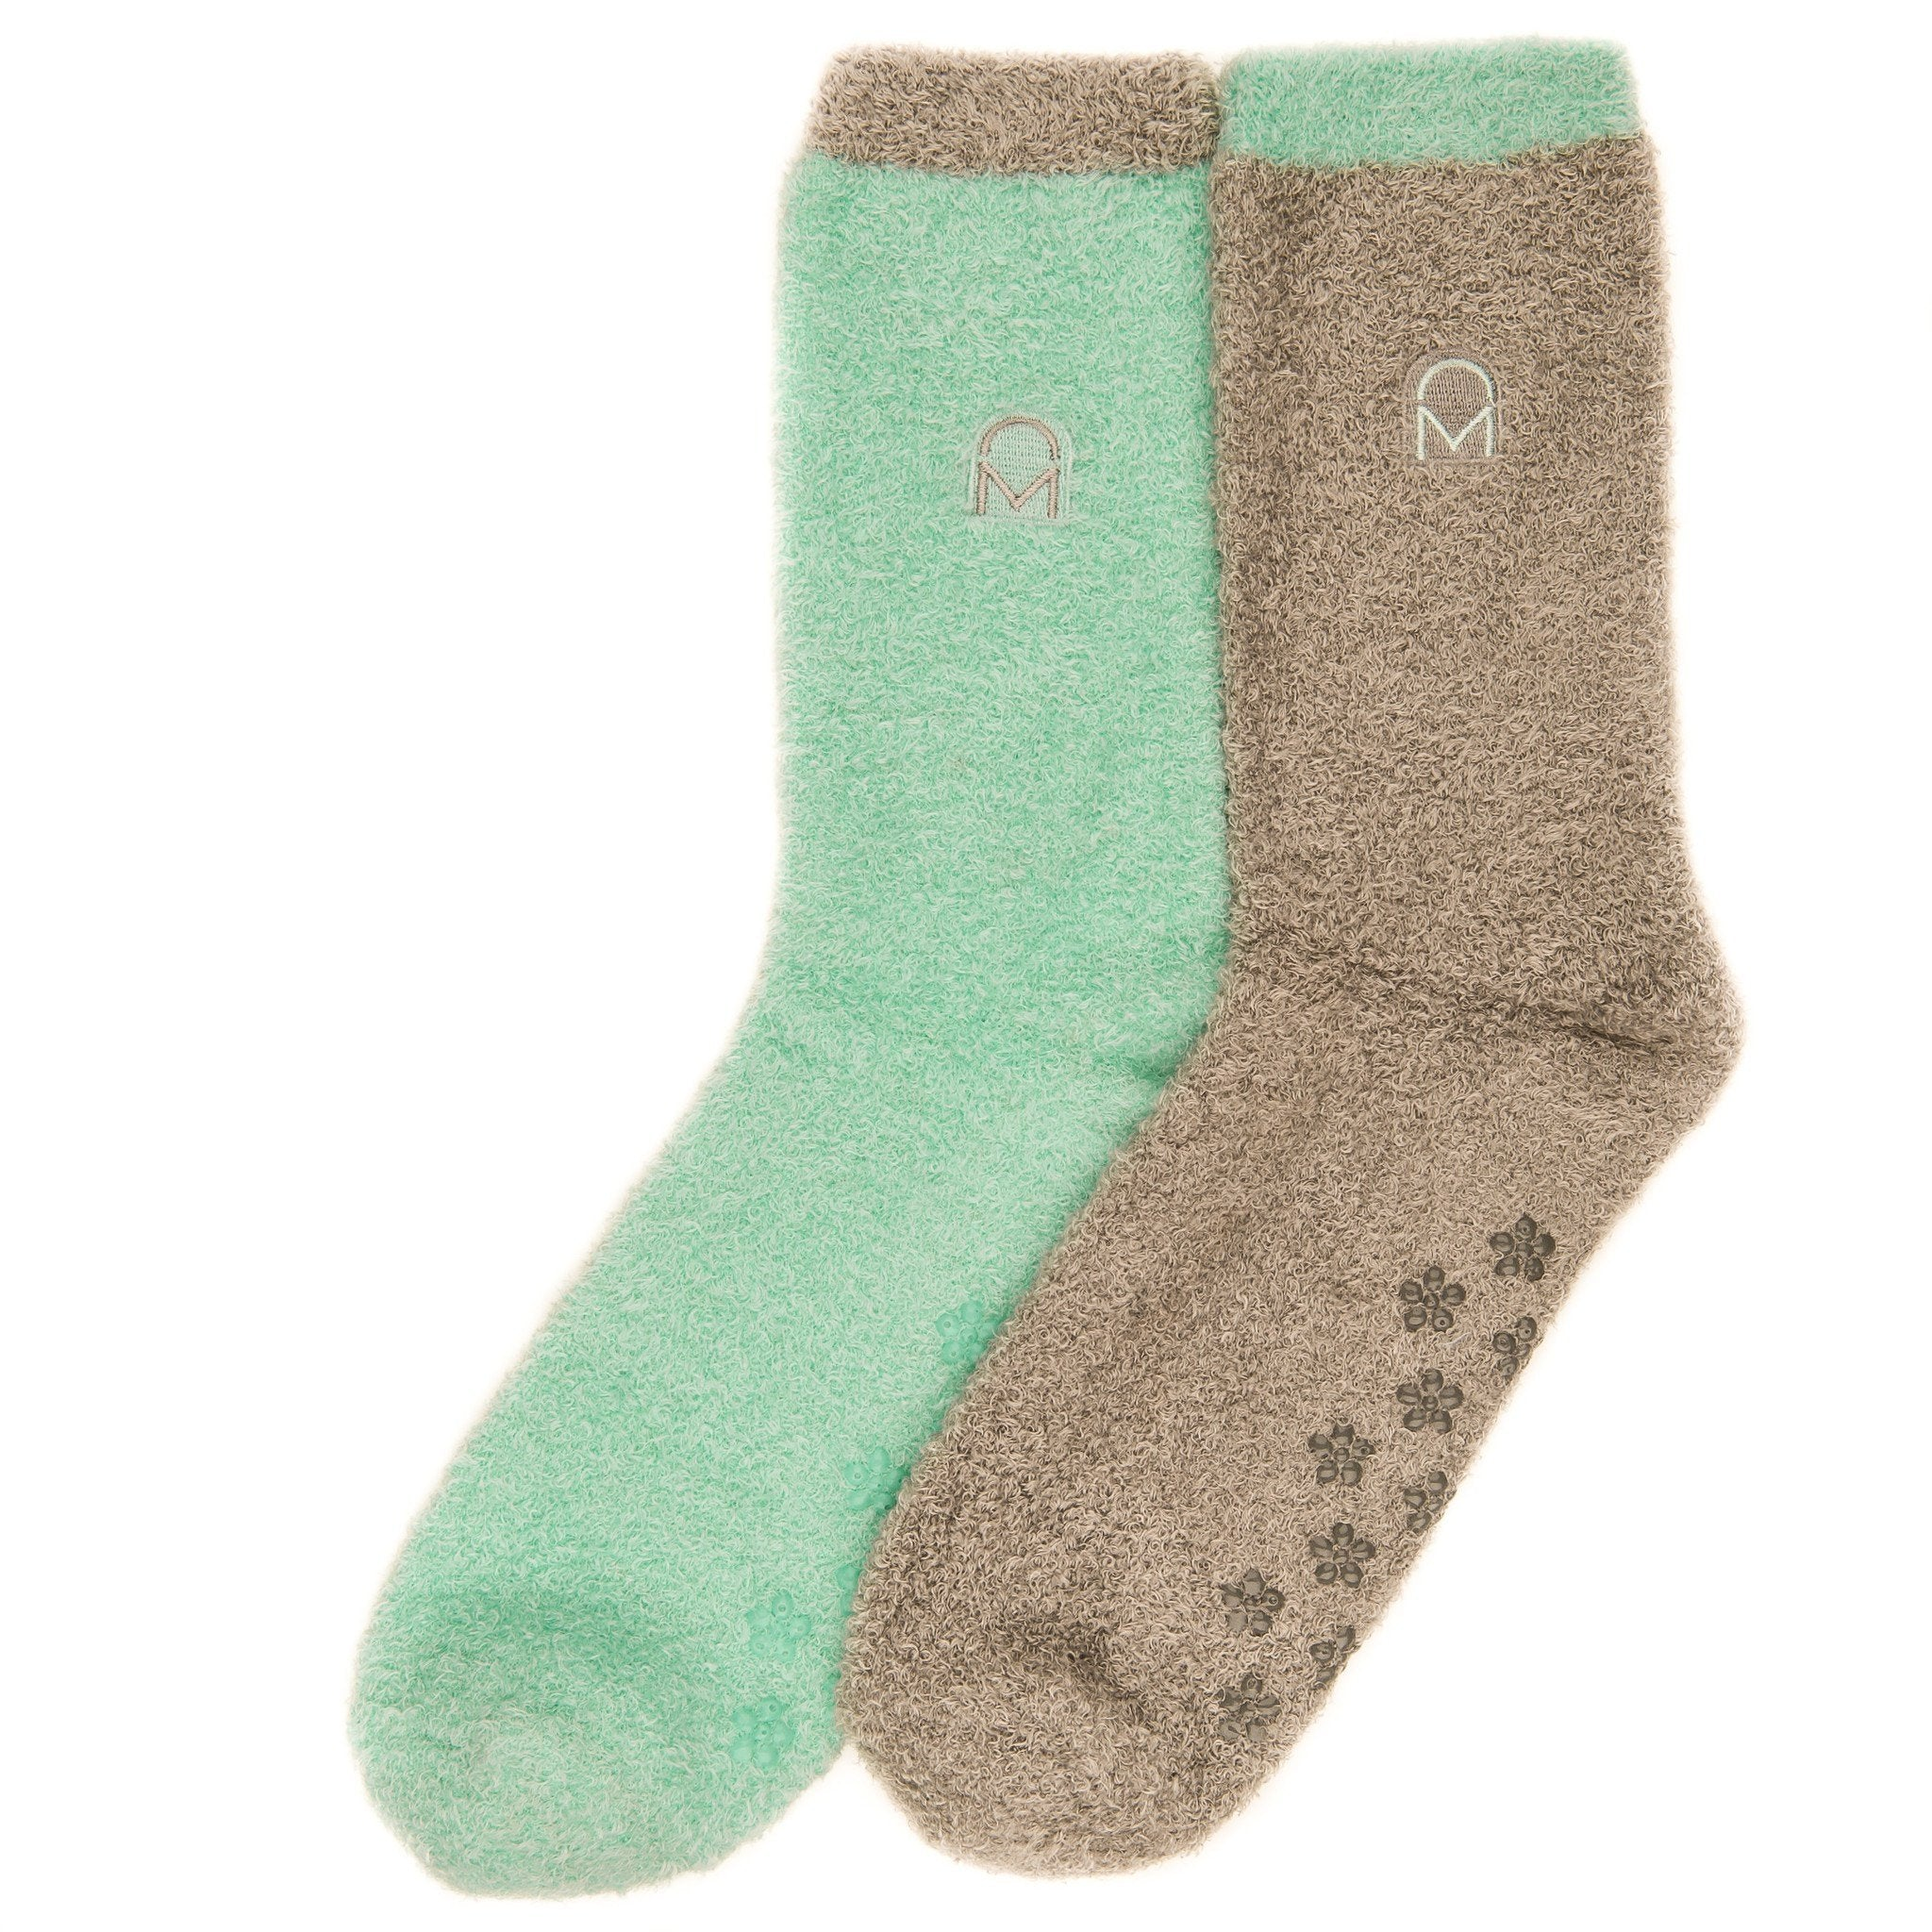 Women's Soft Anti-Skid Winter Feather Socks - 2-Pairs - Set A5